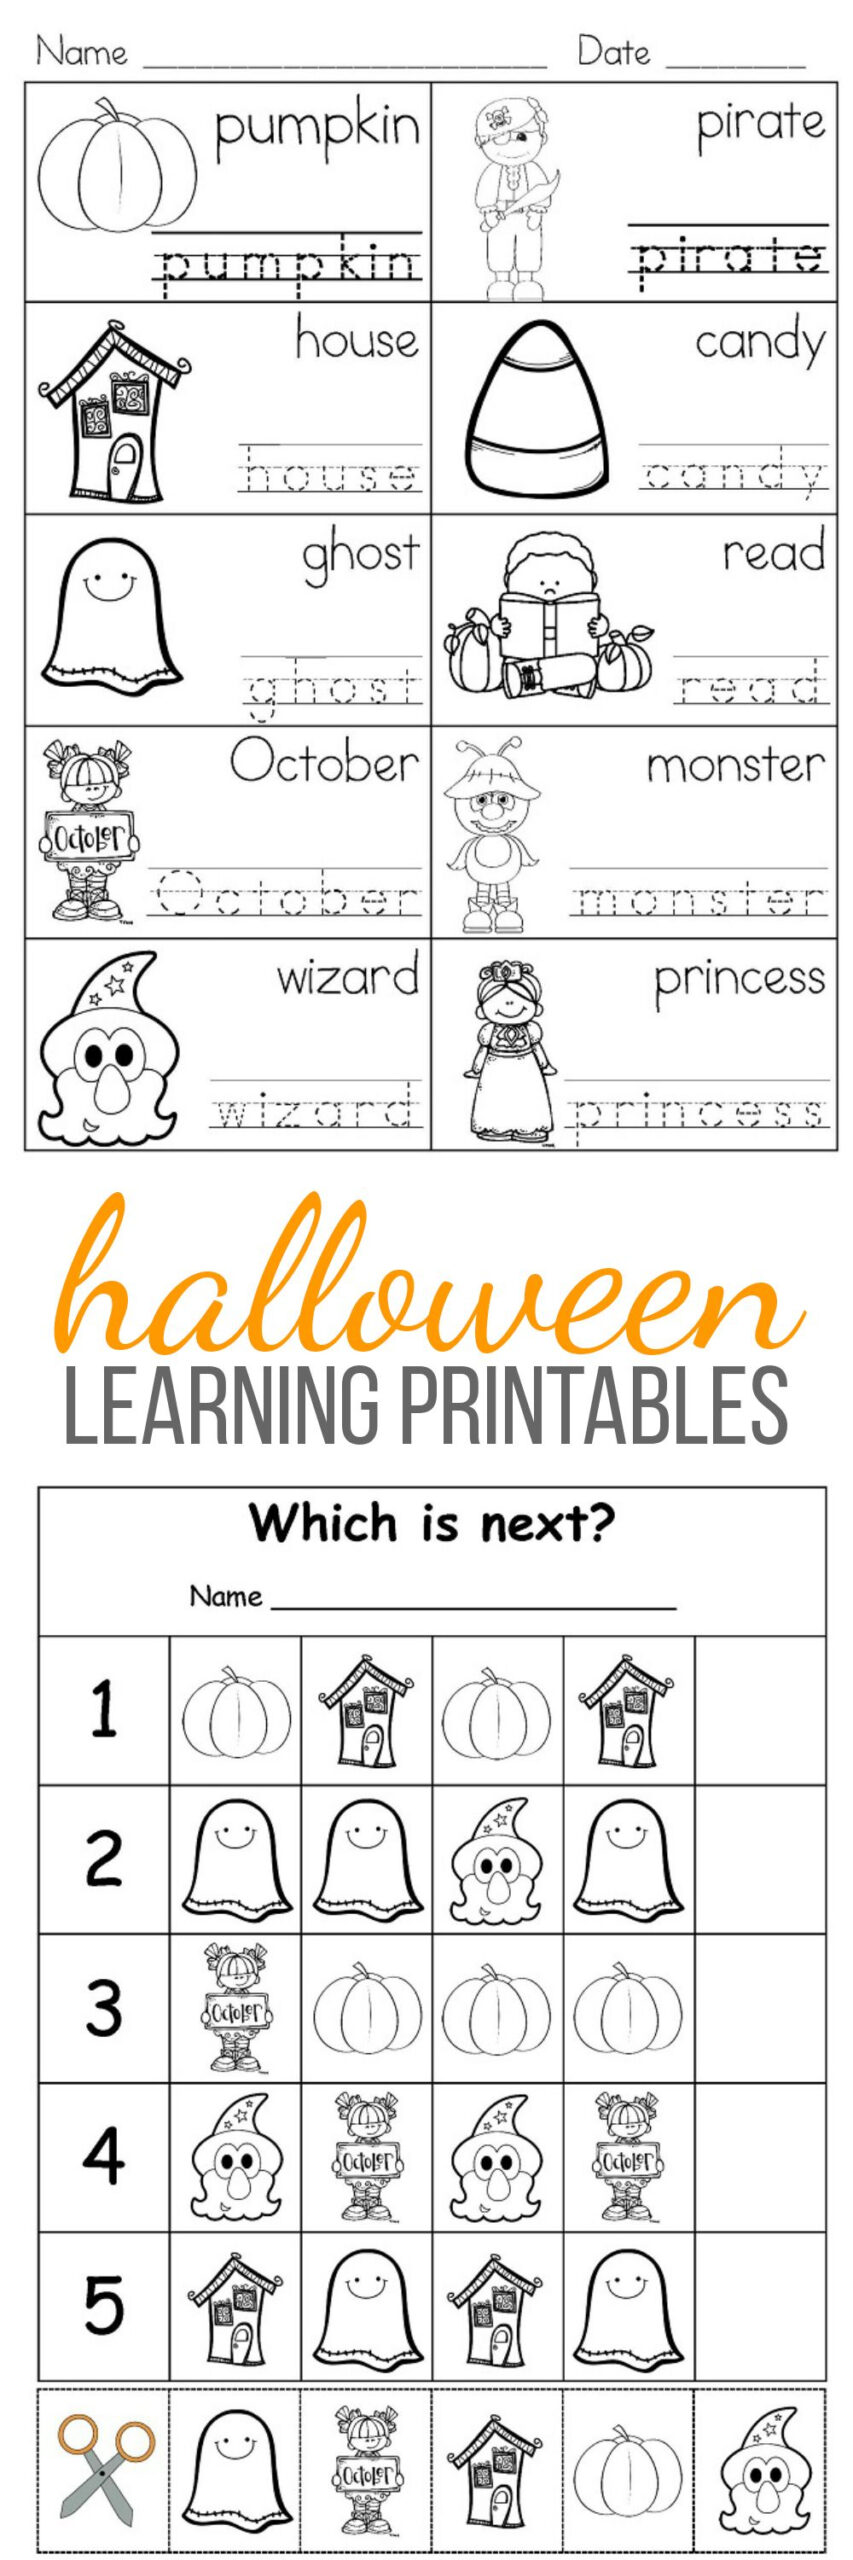 Halloween Free Learning Activities For Kids | Learning